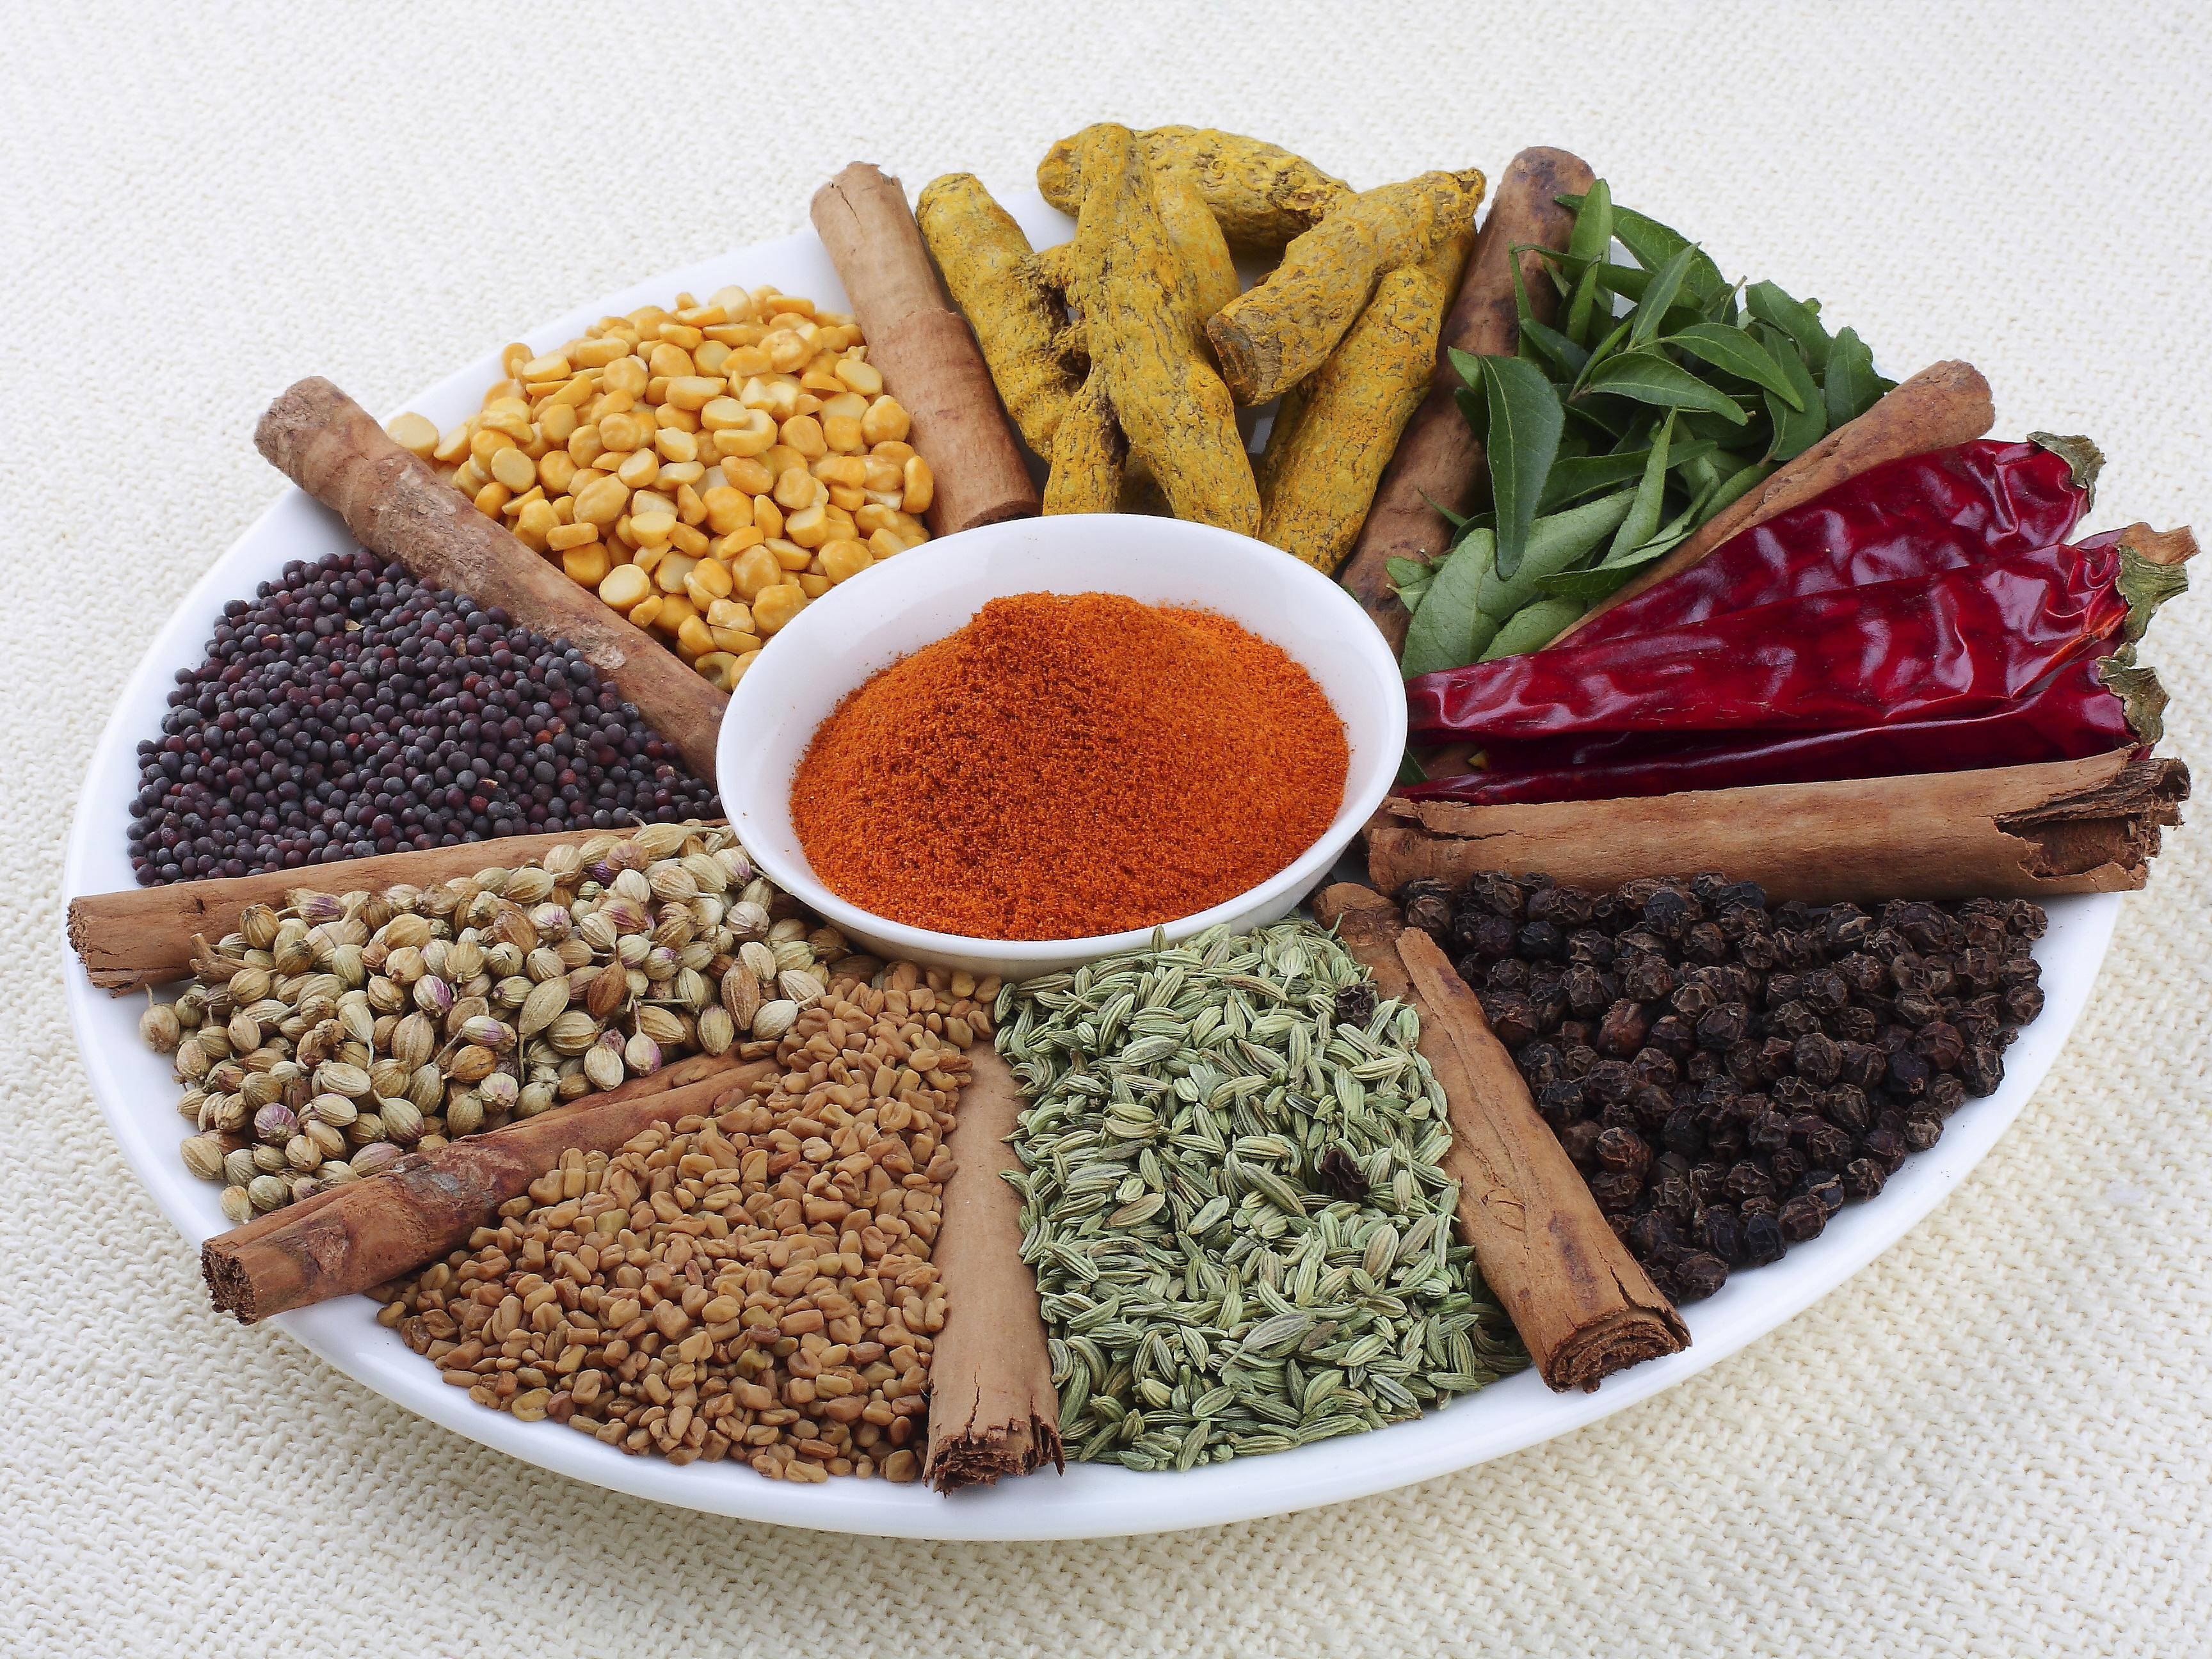 The spice that could require a prescription soon